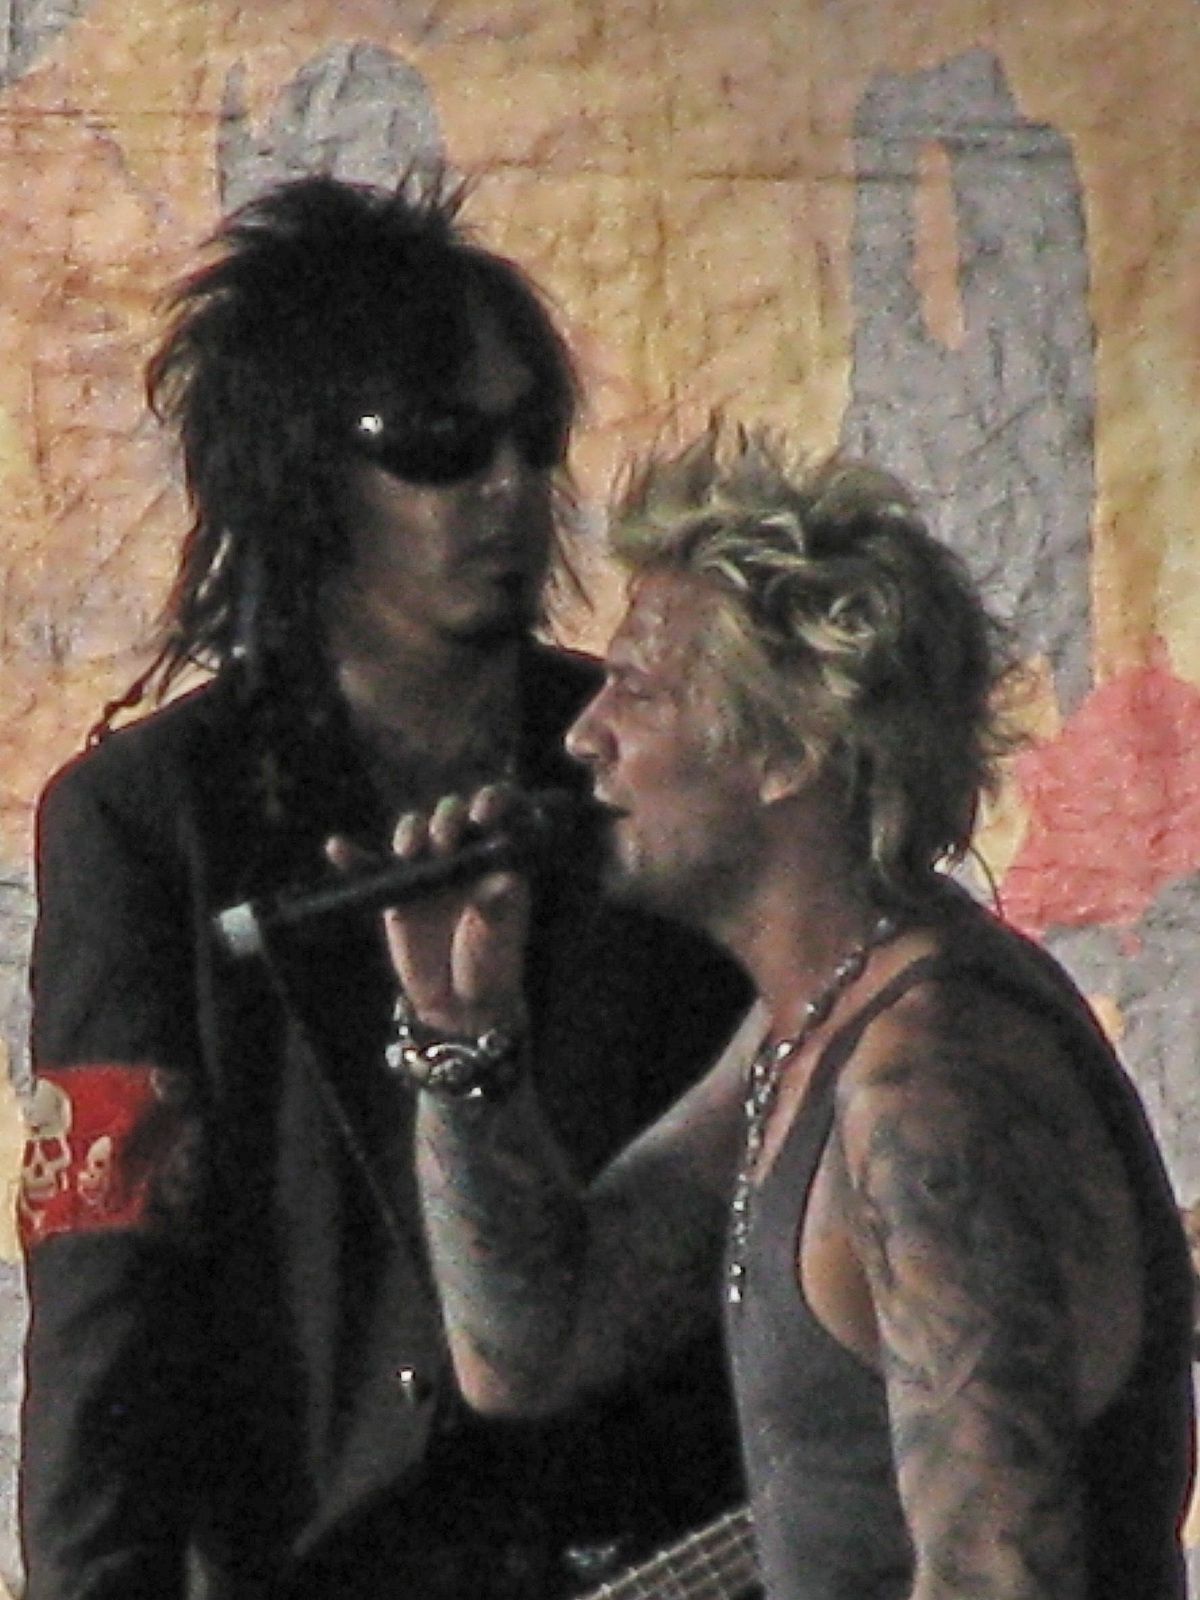 James Michael and Nikki Sixx, SixxA.M. - Photo by Kevin Borland/flickr